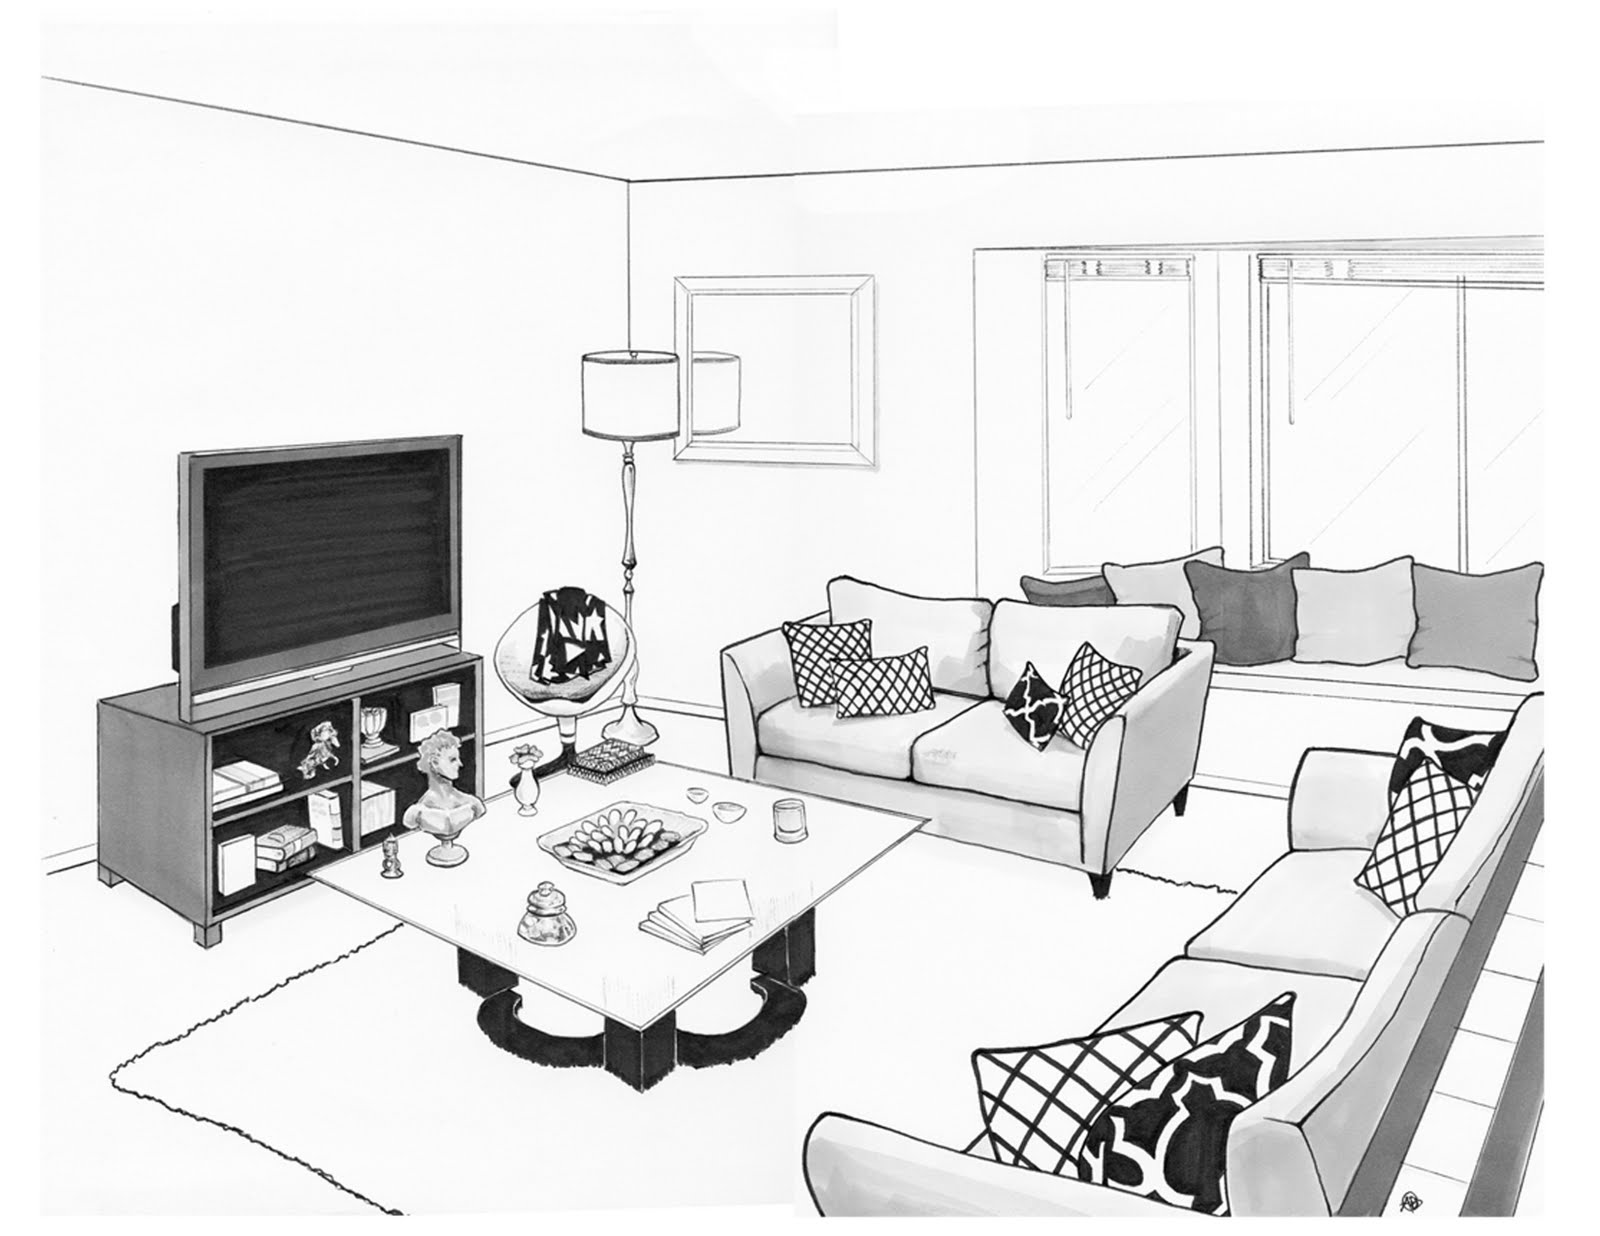 Flako render drawing of andres living room for 3d bedroom drawing